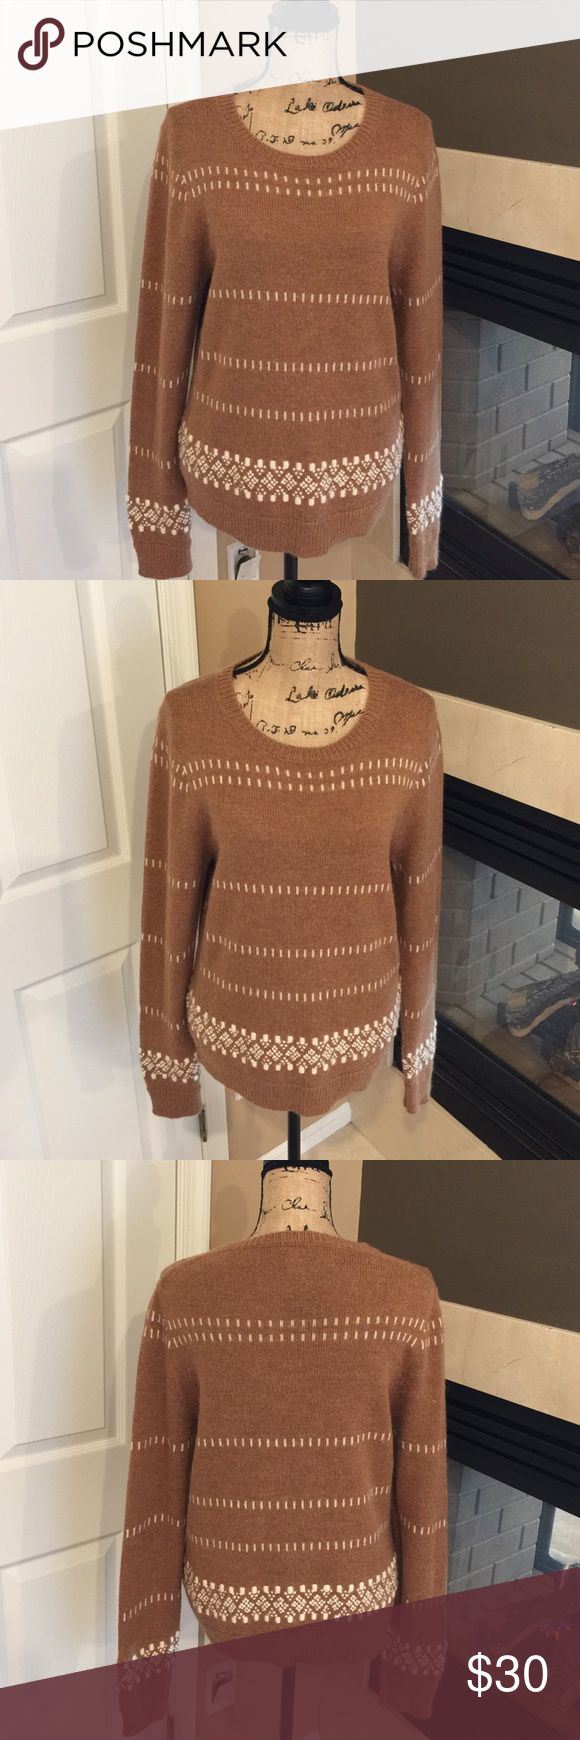 🌺🌼 J.Crew 🌼🌺 Stunning Crew Neck Sweater 🌺🌼 J.Crew 🌼🌺 Stunning Crew Neck Sweater is in great condition.  Preloved warm and cozy sweater. J. Crew Sweaters Crew & Scoop Necks